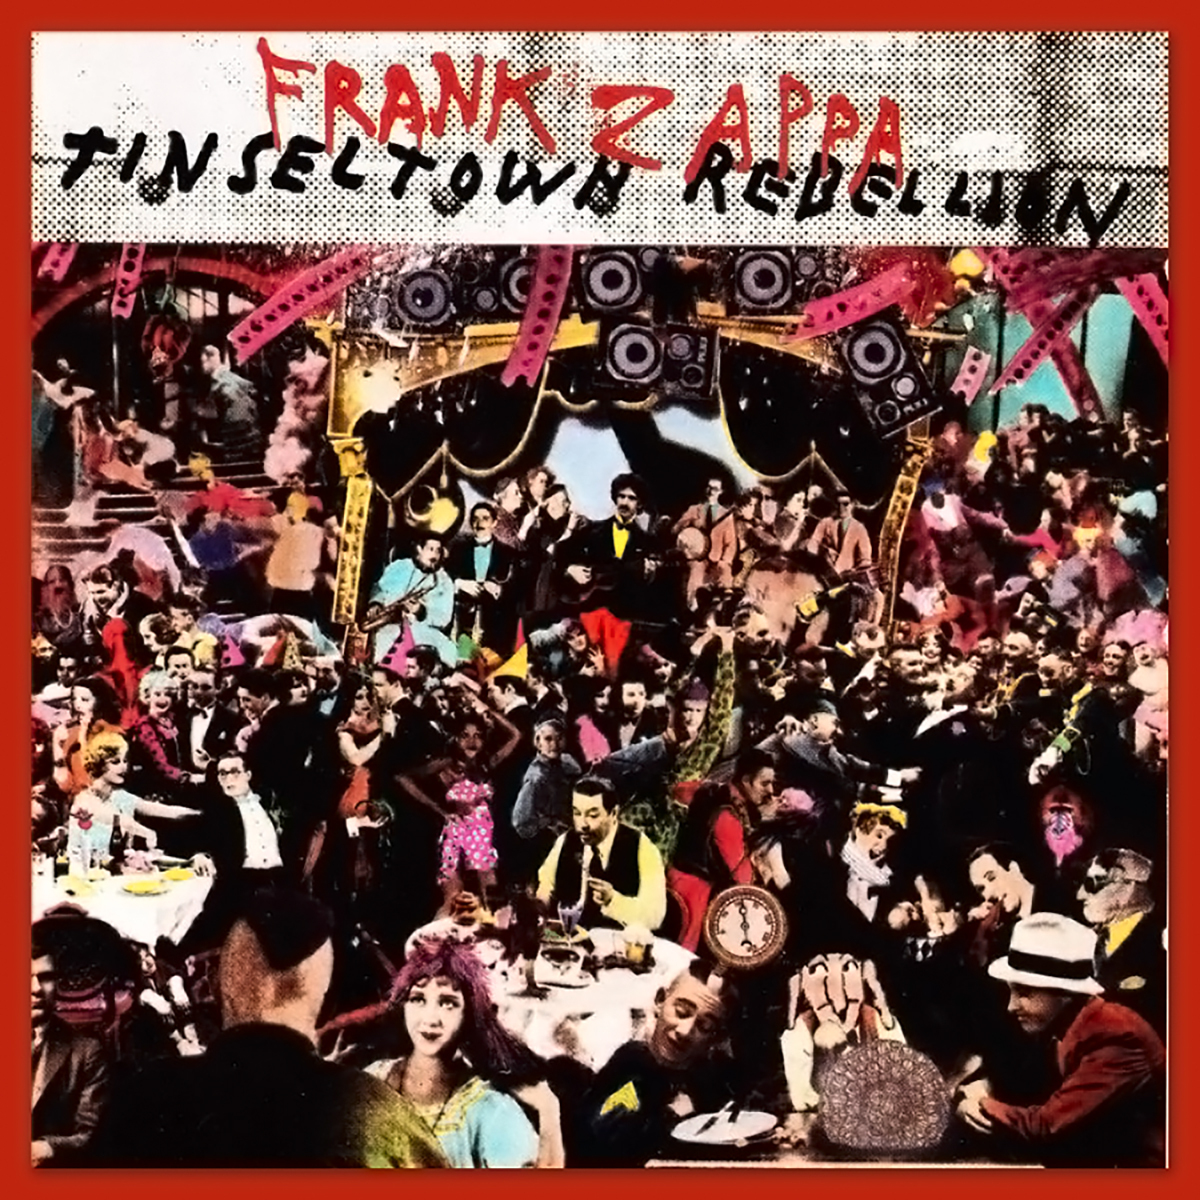 Frank Zappa - Tinsel Town Rebellion (1981)